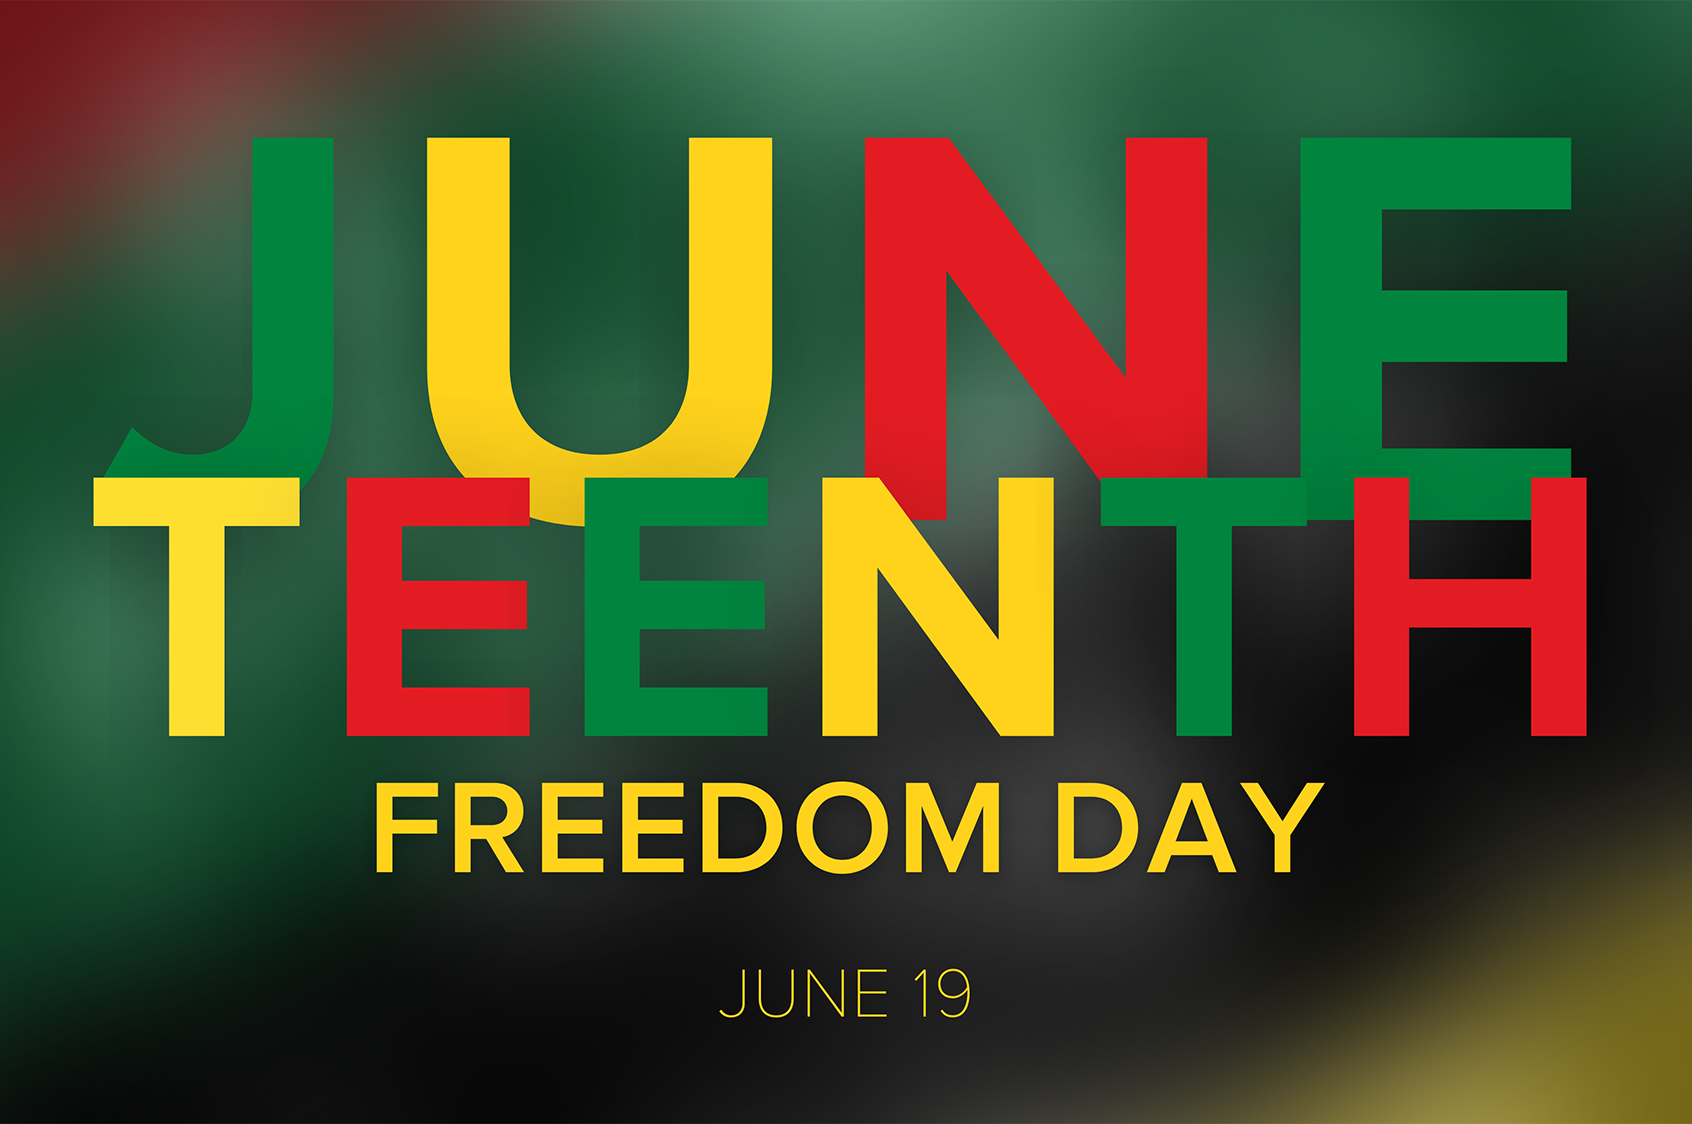 Juneteenth African American Freedom Day